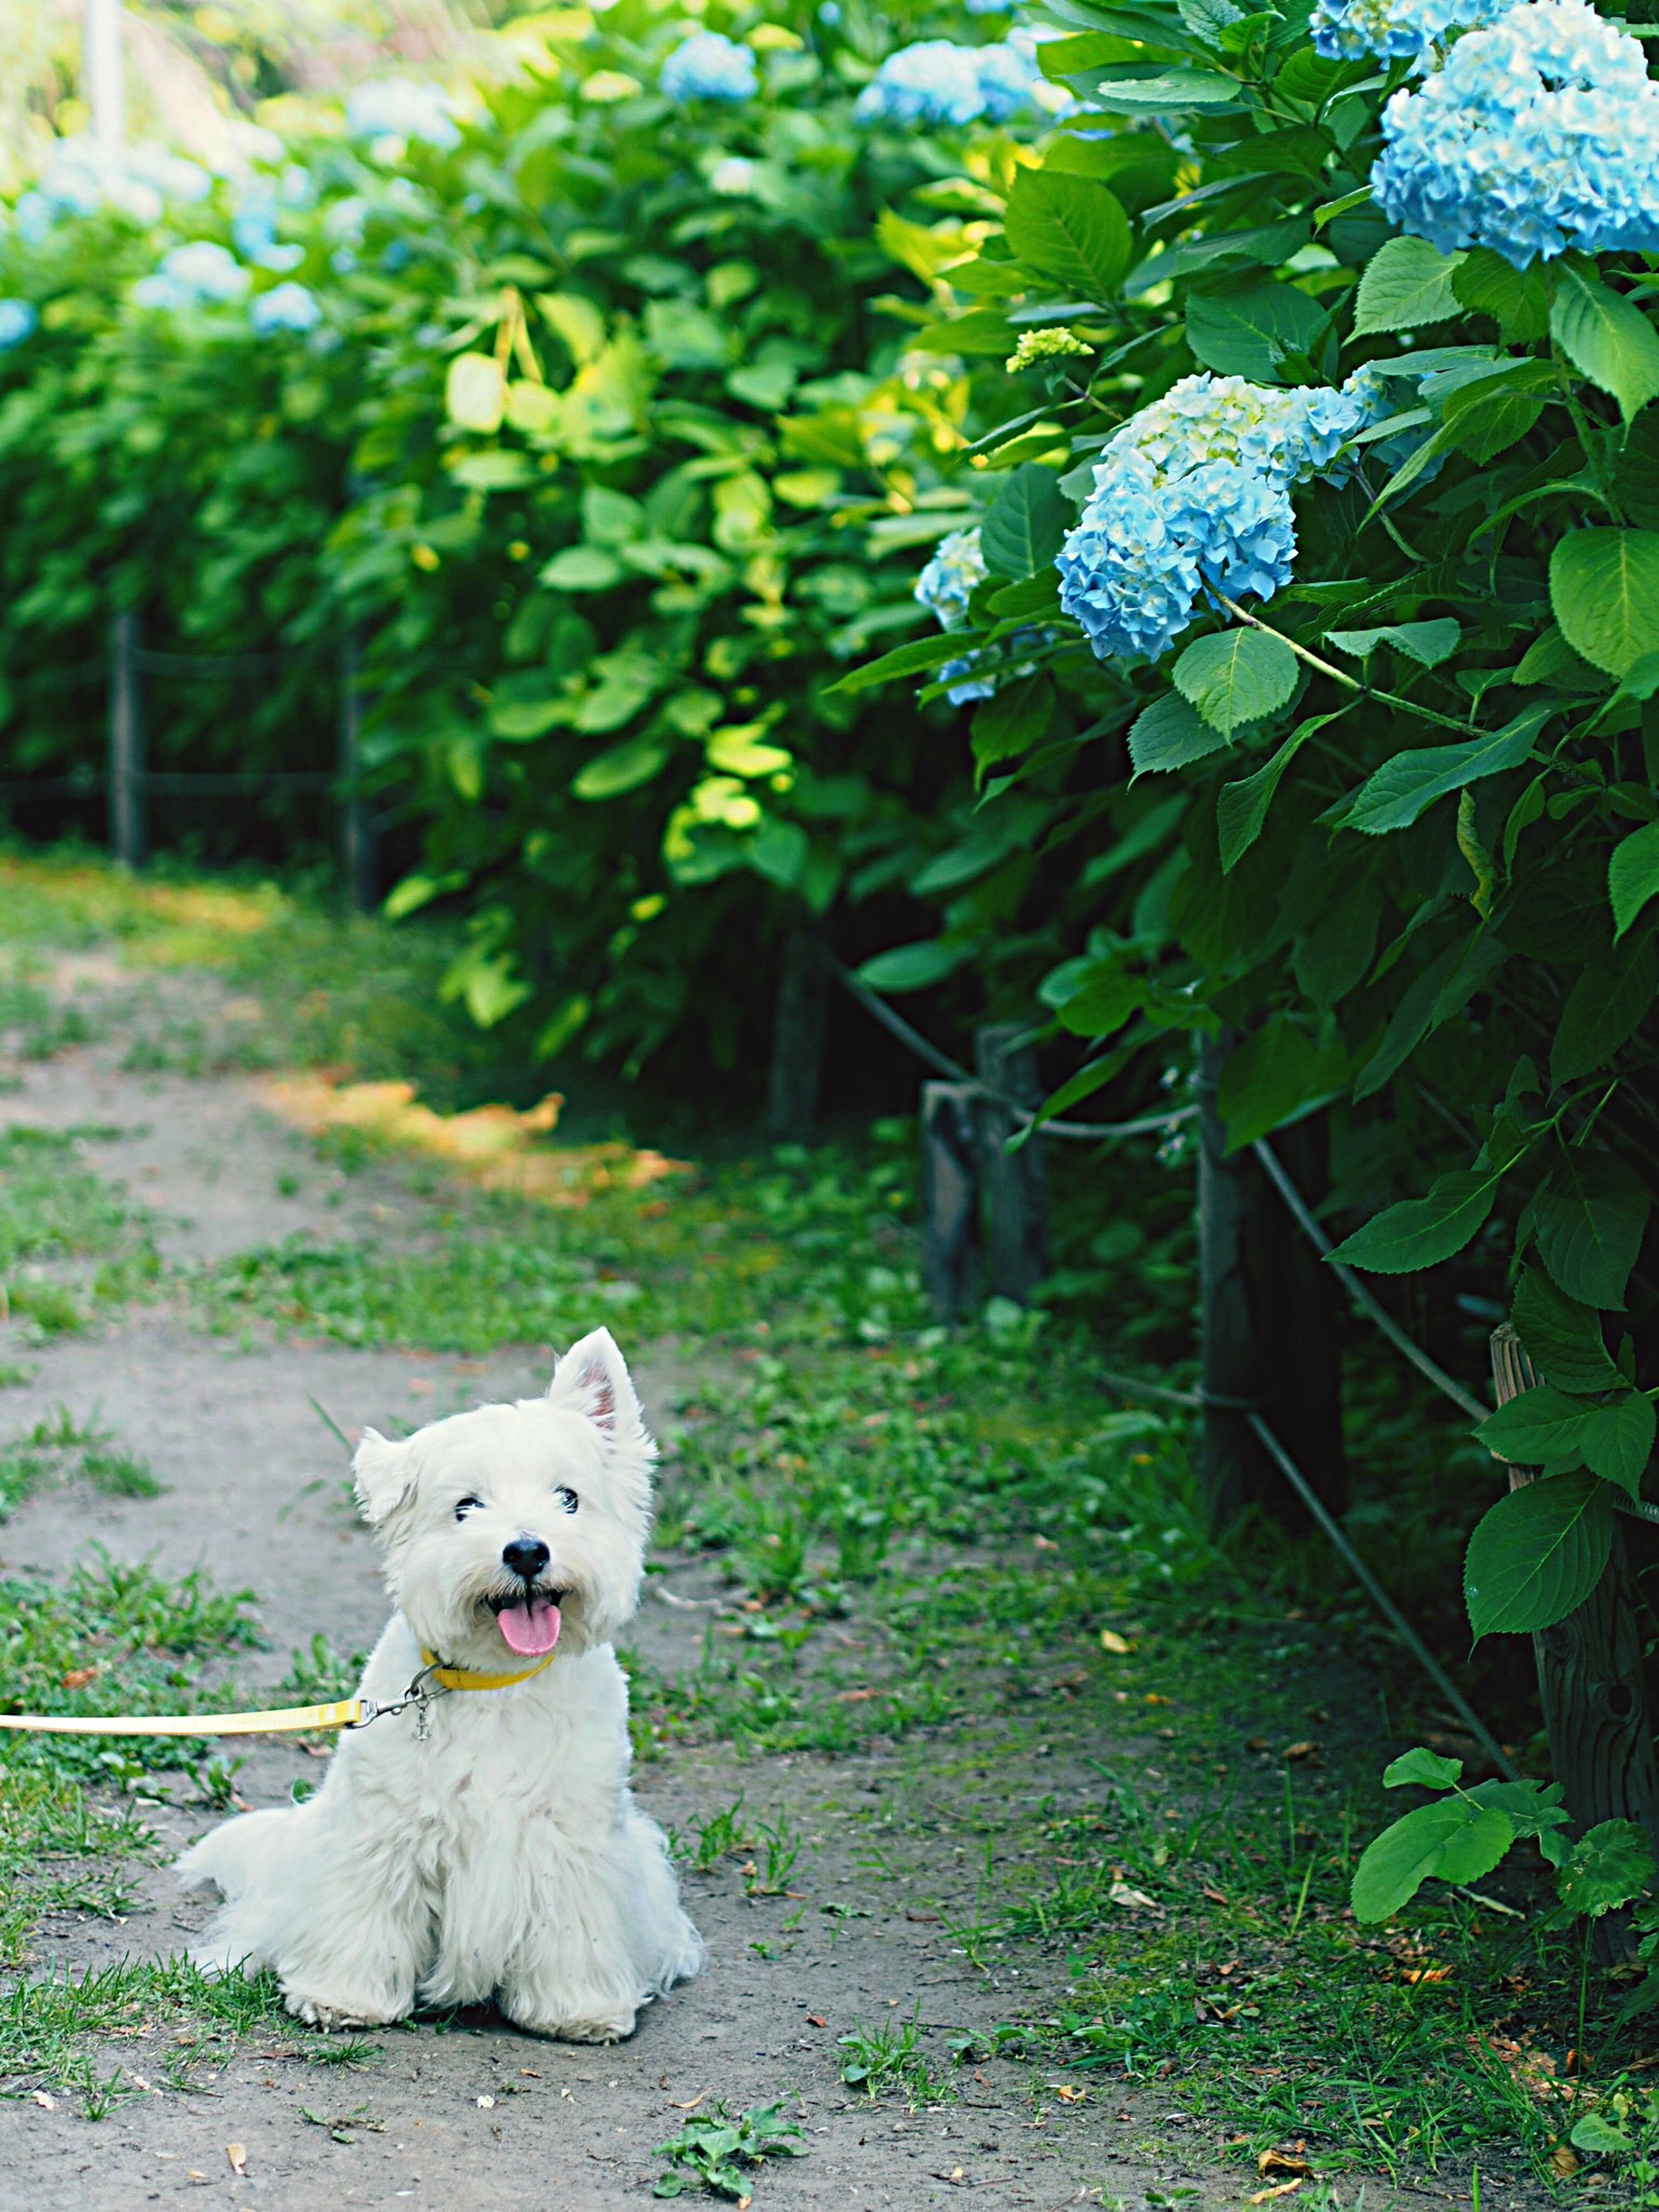 animal themes, one animal, domestic animals, white color, pets, plant, growth, grass, green color, mammal, flower, front or back yard, nature, park - man made space, dog, field, leaf, outdoors, day, domestic cat